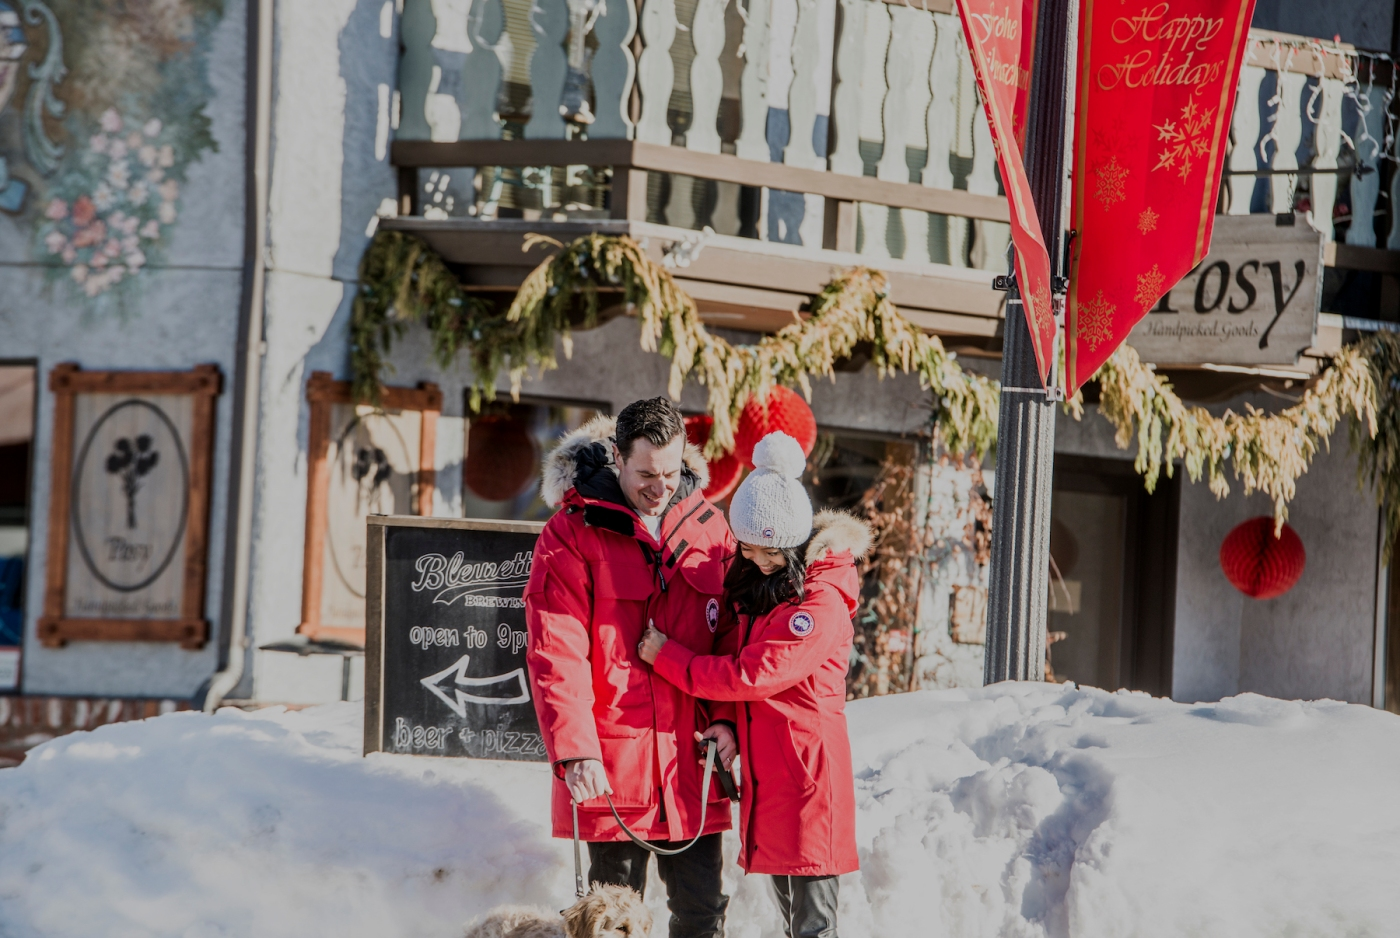 leavenworth_elopement_by_jane_speleers_photography_seattle_photographer_2017_winter_snow_joy_and_jason_rendezvous_ranch_cashmere_leavenworth_nahahum_canyon_all_rights_reserveddsc_9602